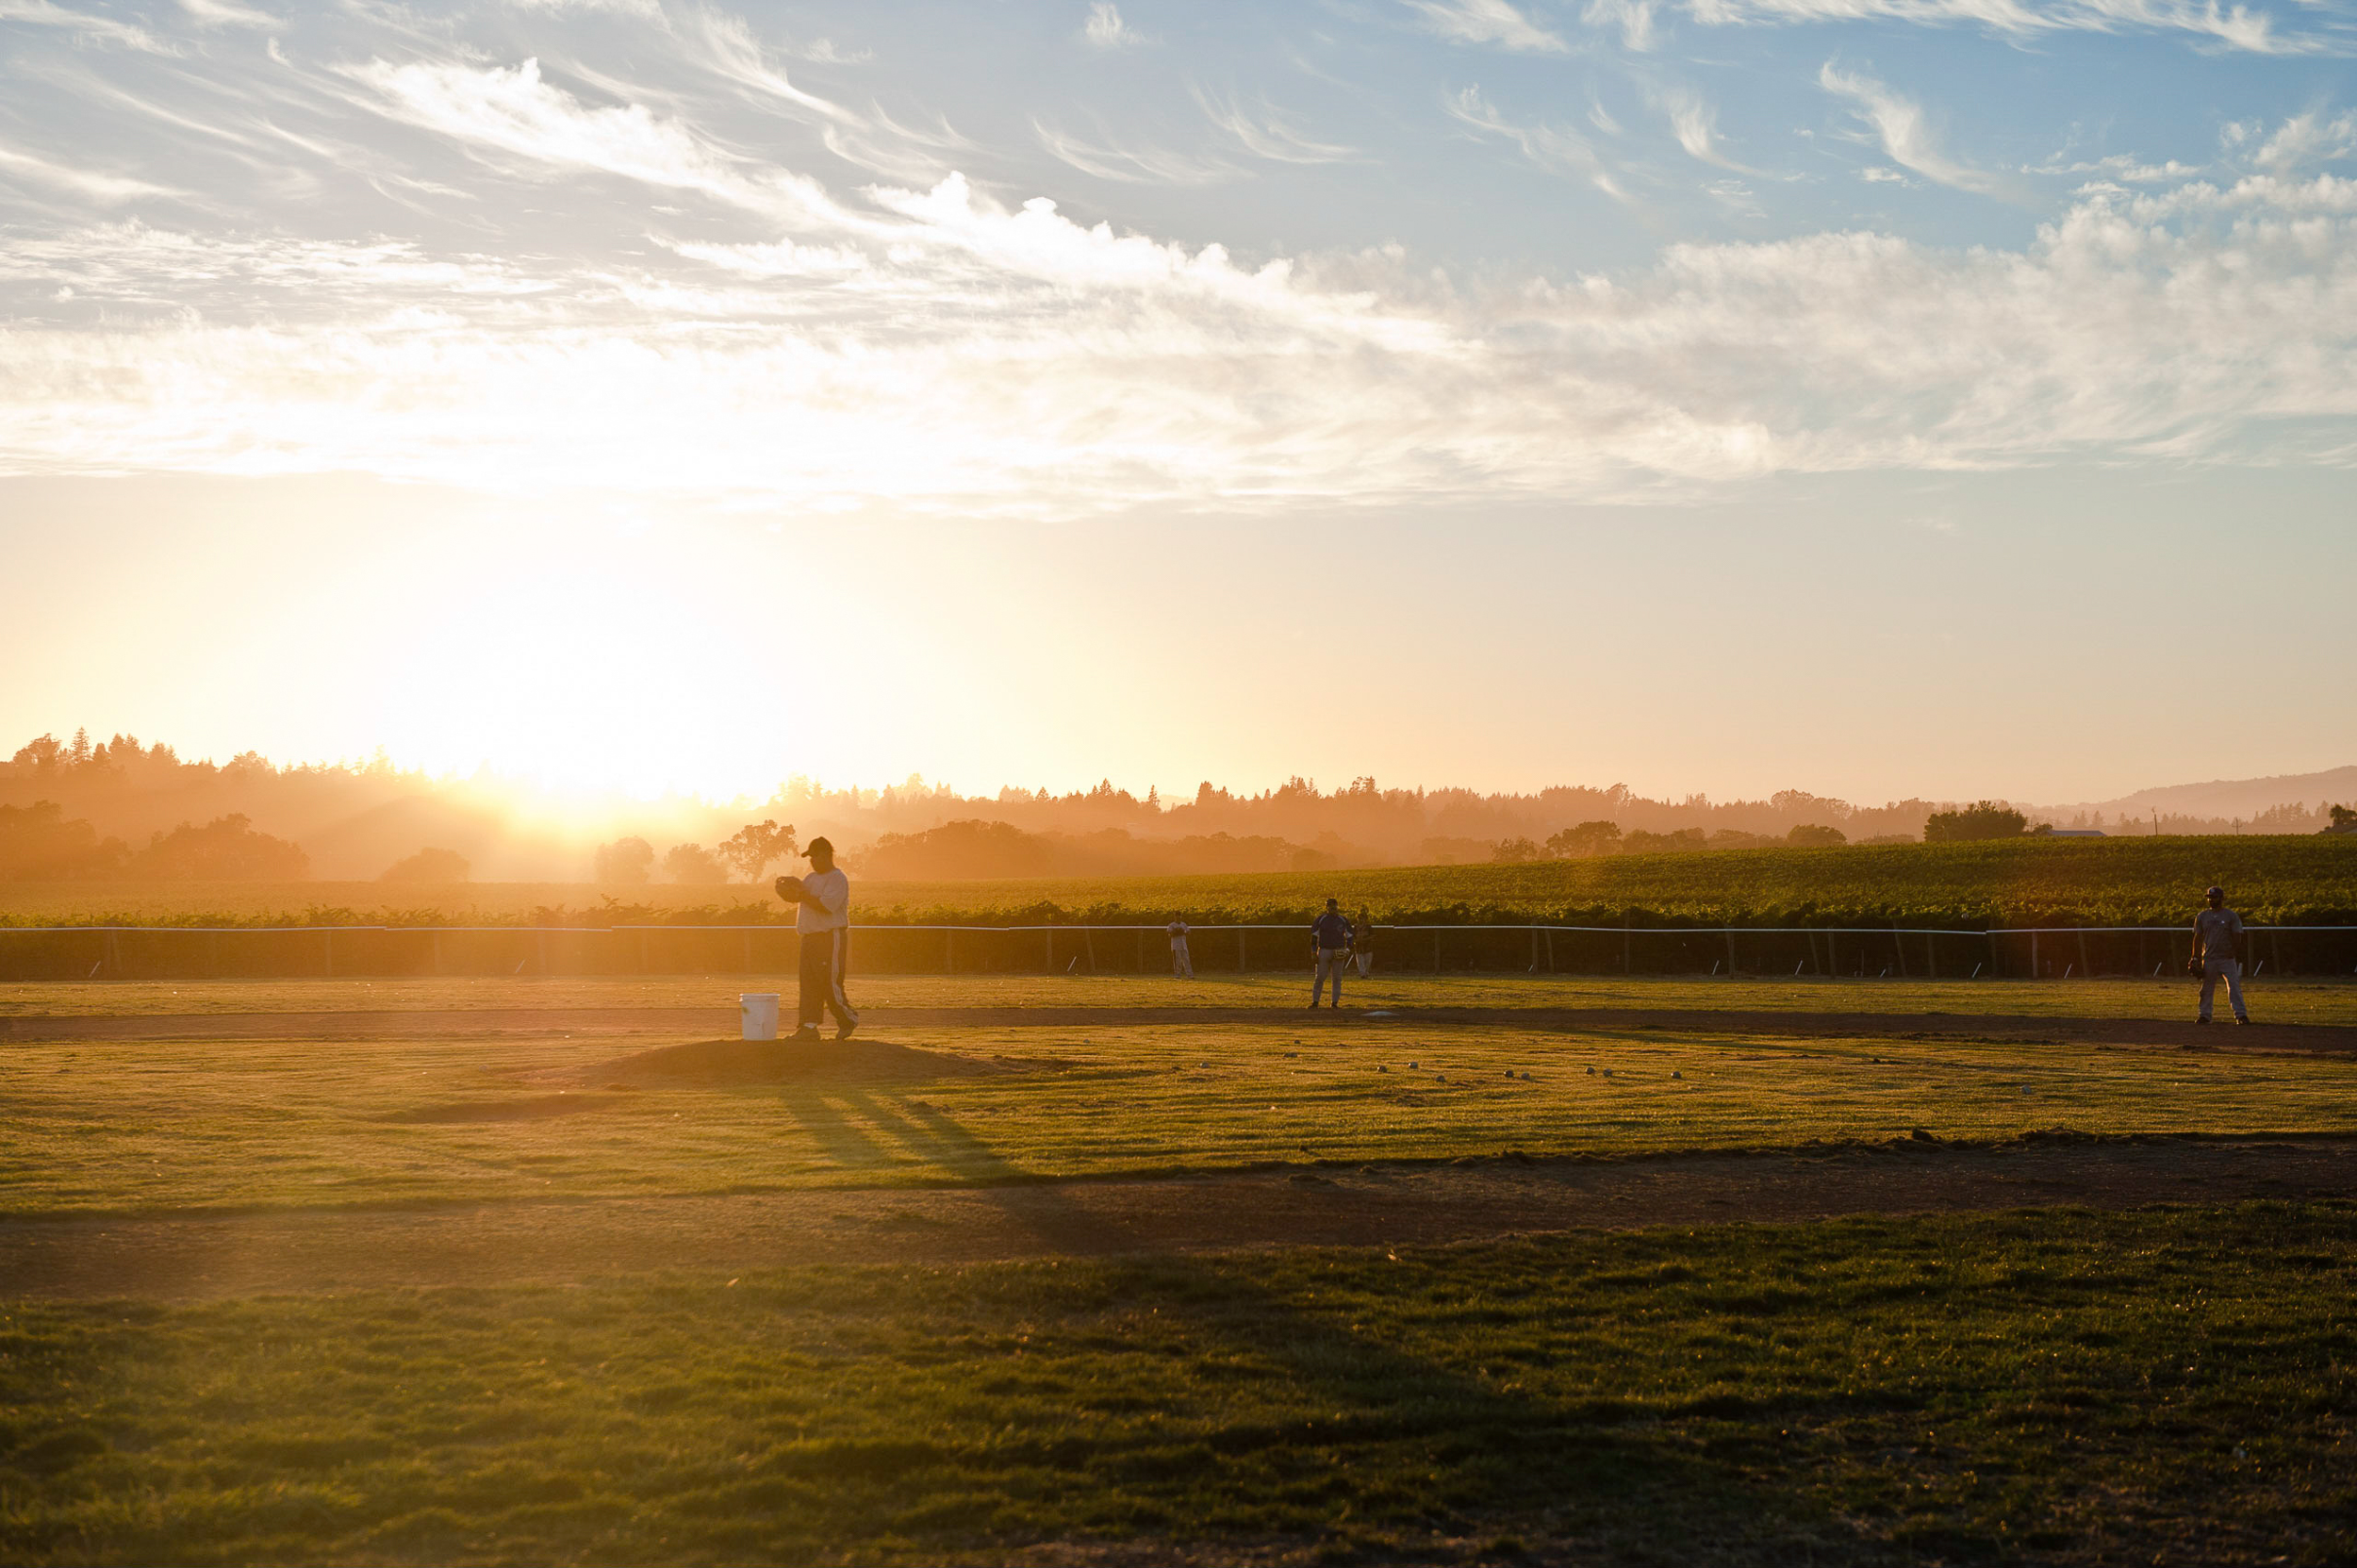 Sunset_image_of_people_playing_on_the_field_of_dreams.png